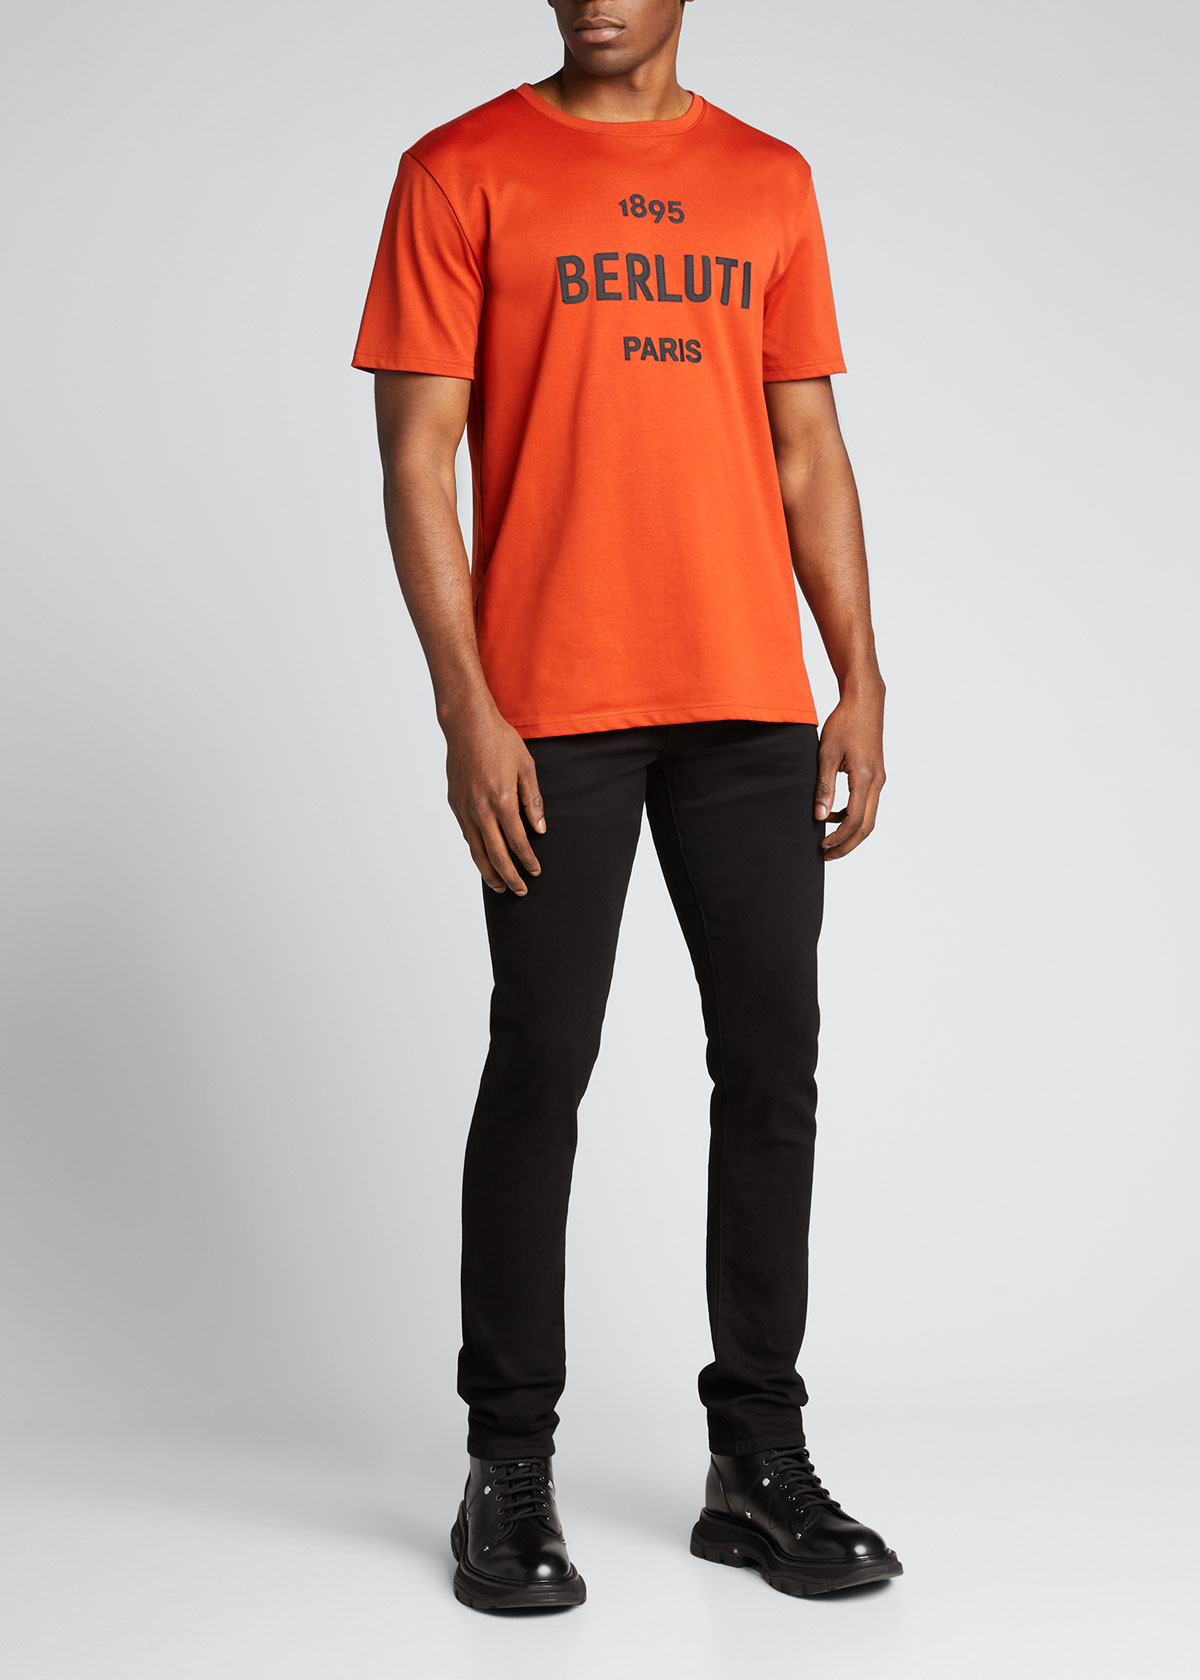 Berluti MEN'S 1895 LOGO T-SHIRT